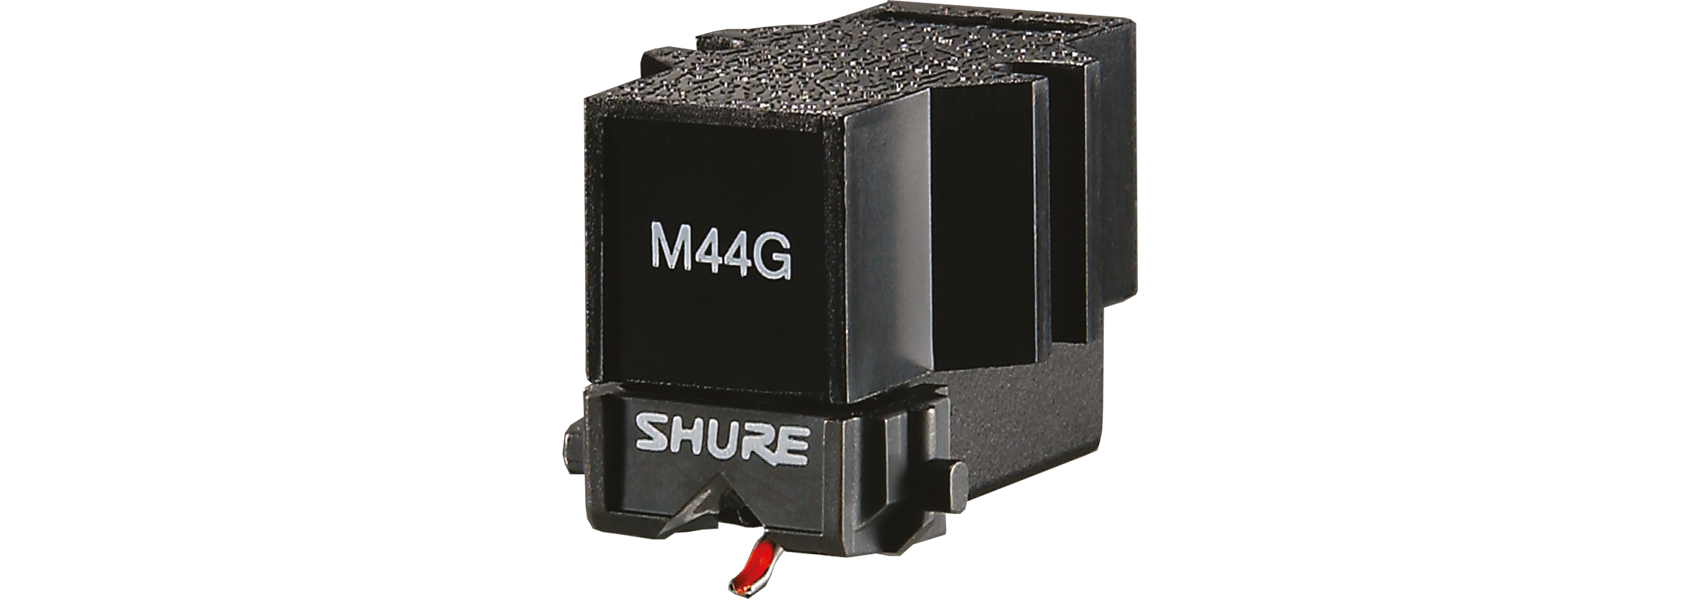 Illustration Shure M44G DJ Phono Cartridge